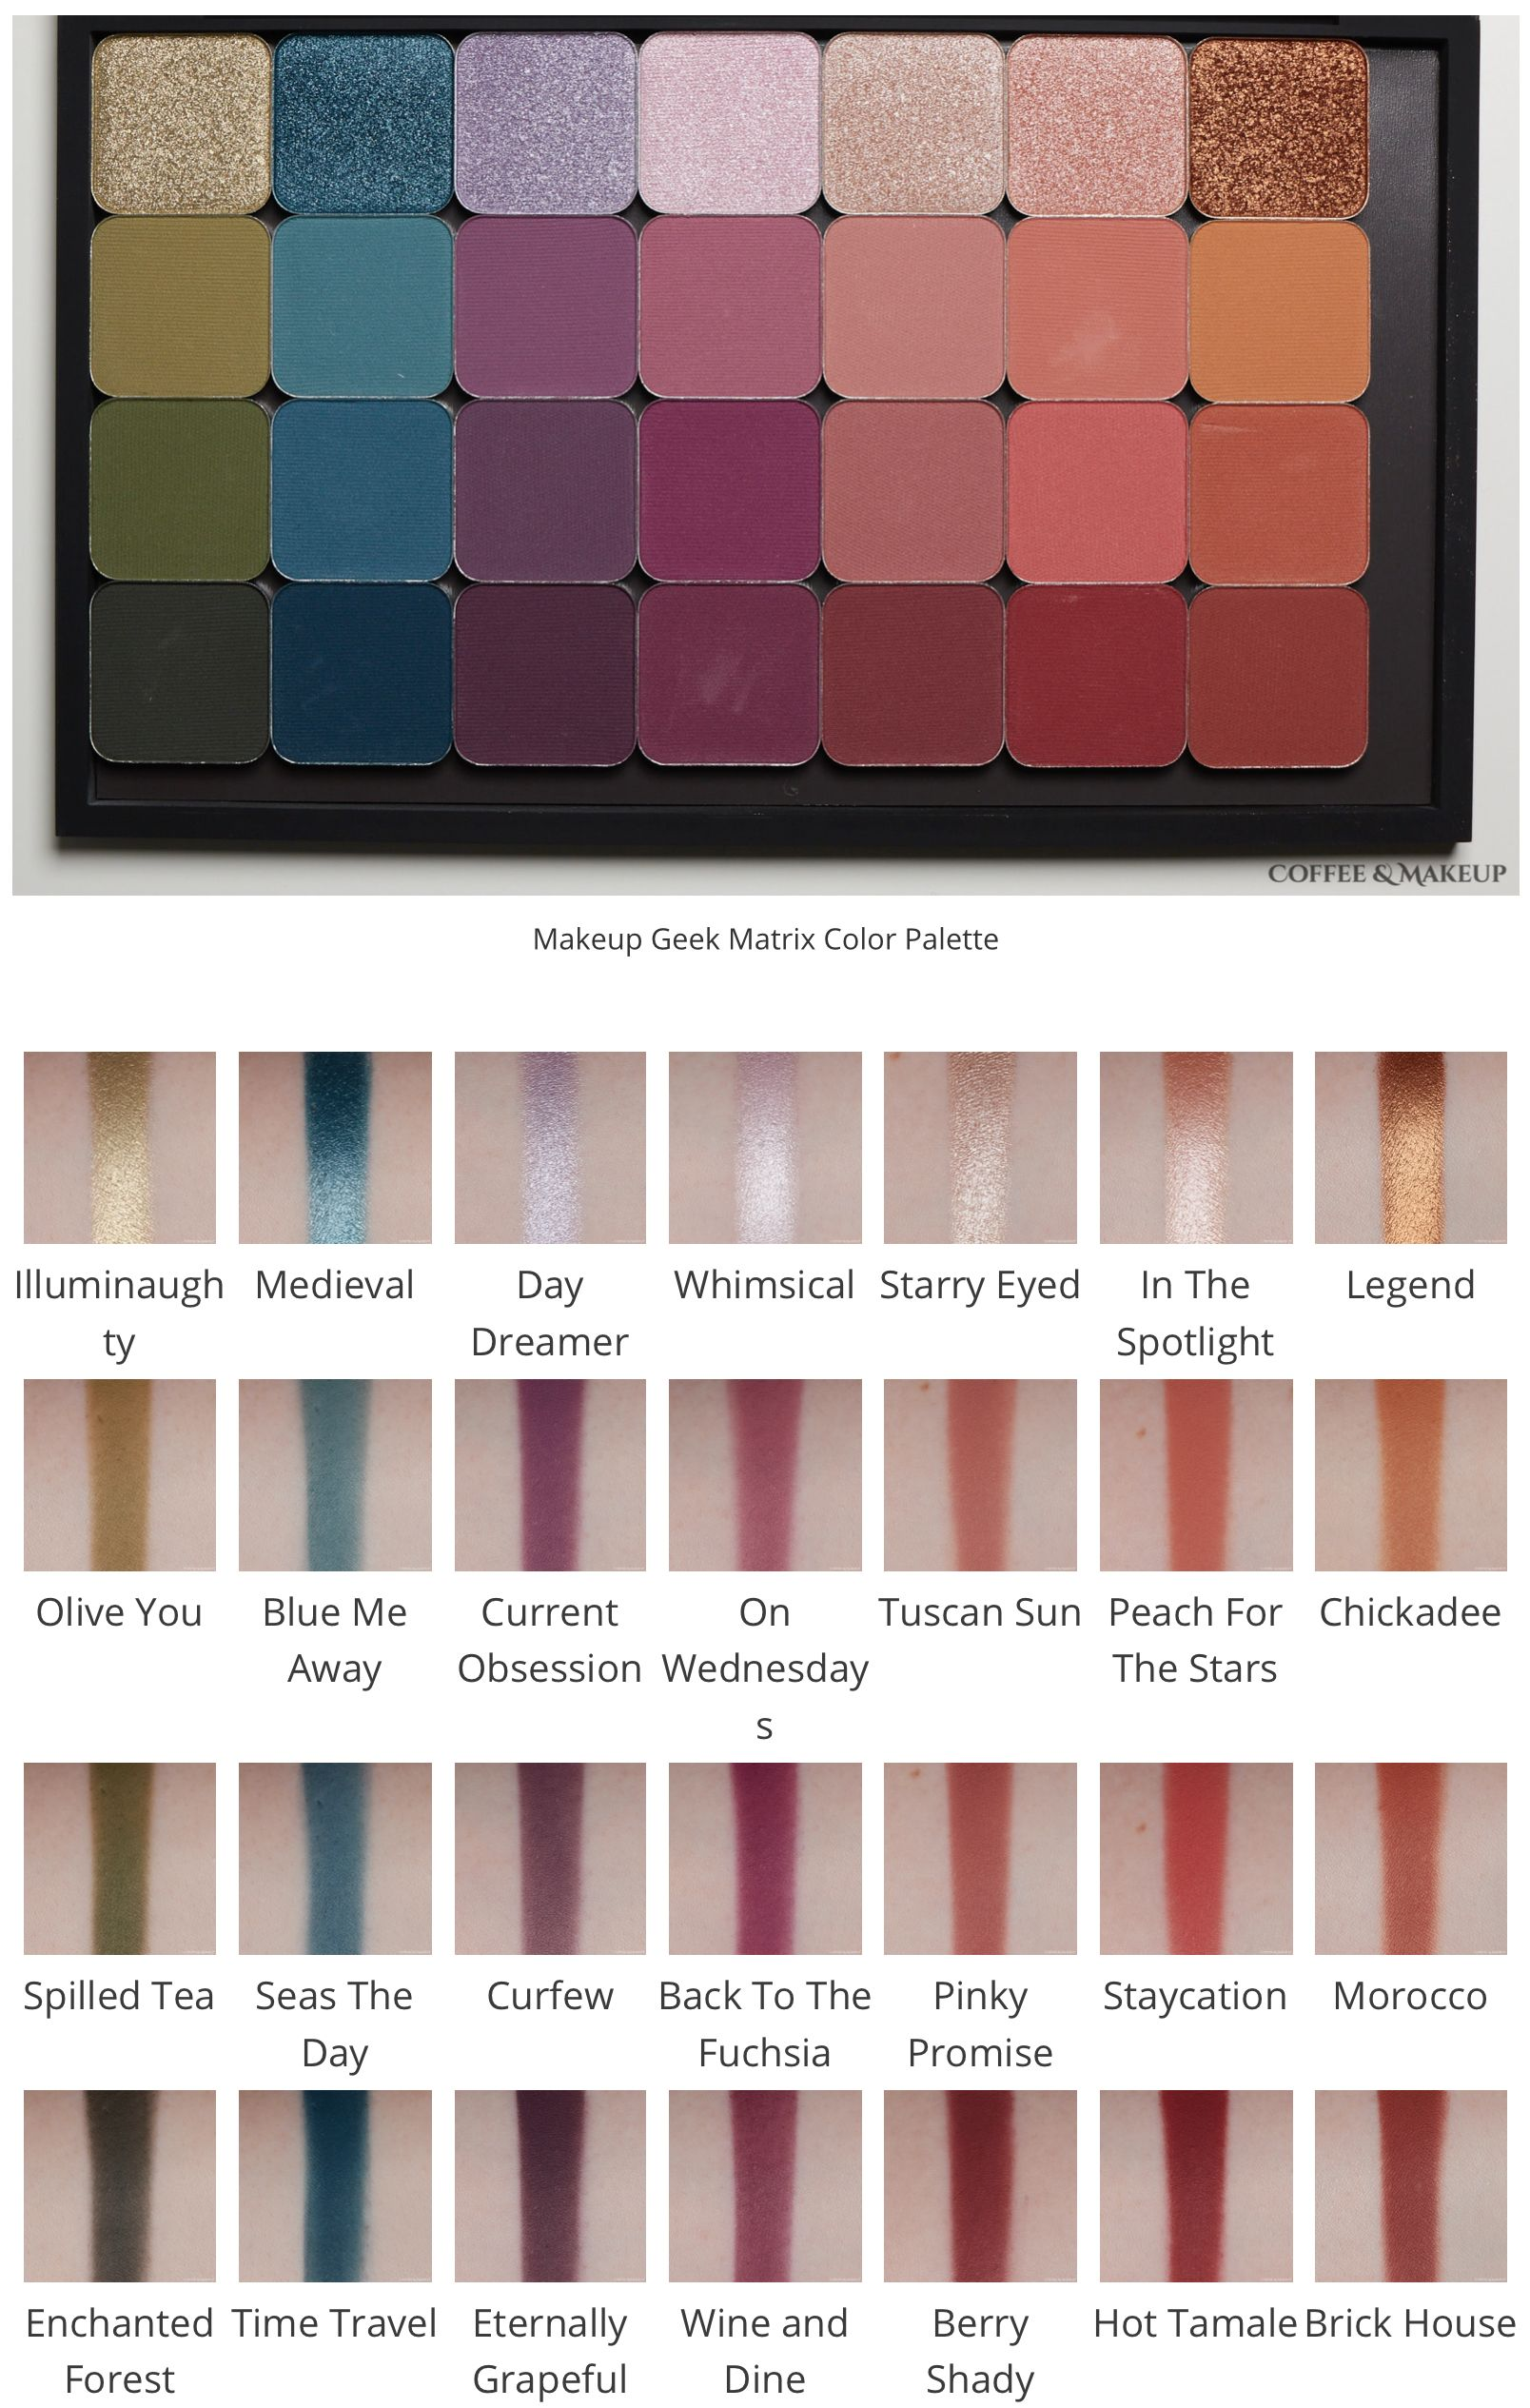 Swatches Makeup Geek Eyeshadows Coffee Makeup In 2020 Makeup Geek Palette Makeup Geek Eyeshadow Makeup Geek